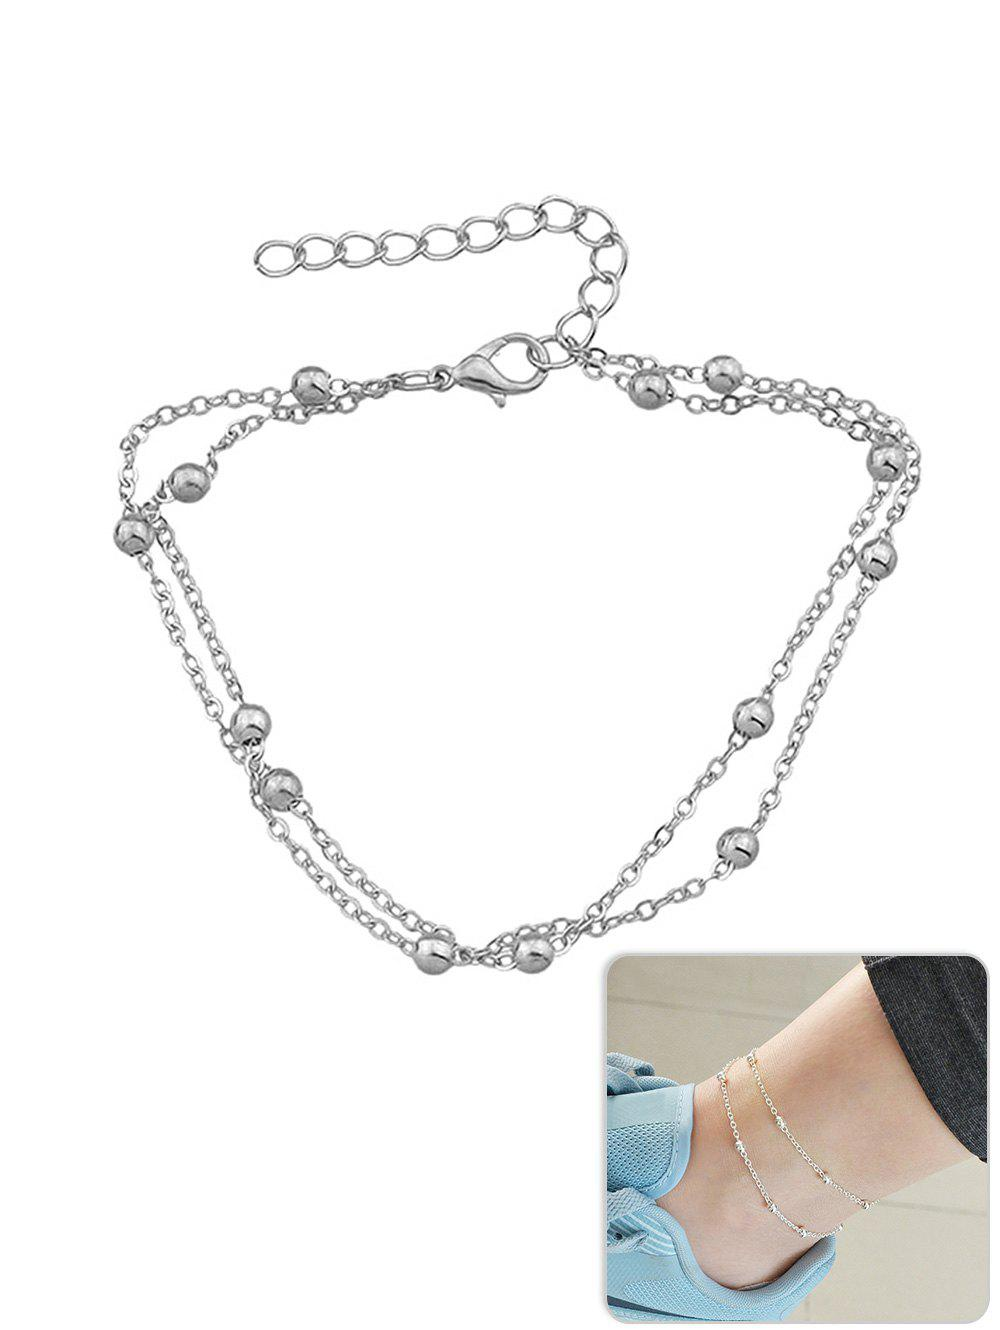 Discount Metal Beads Design Layered Anklet Chain